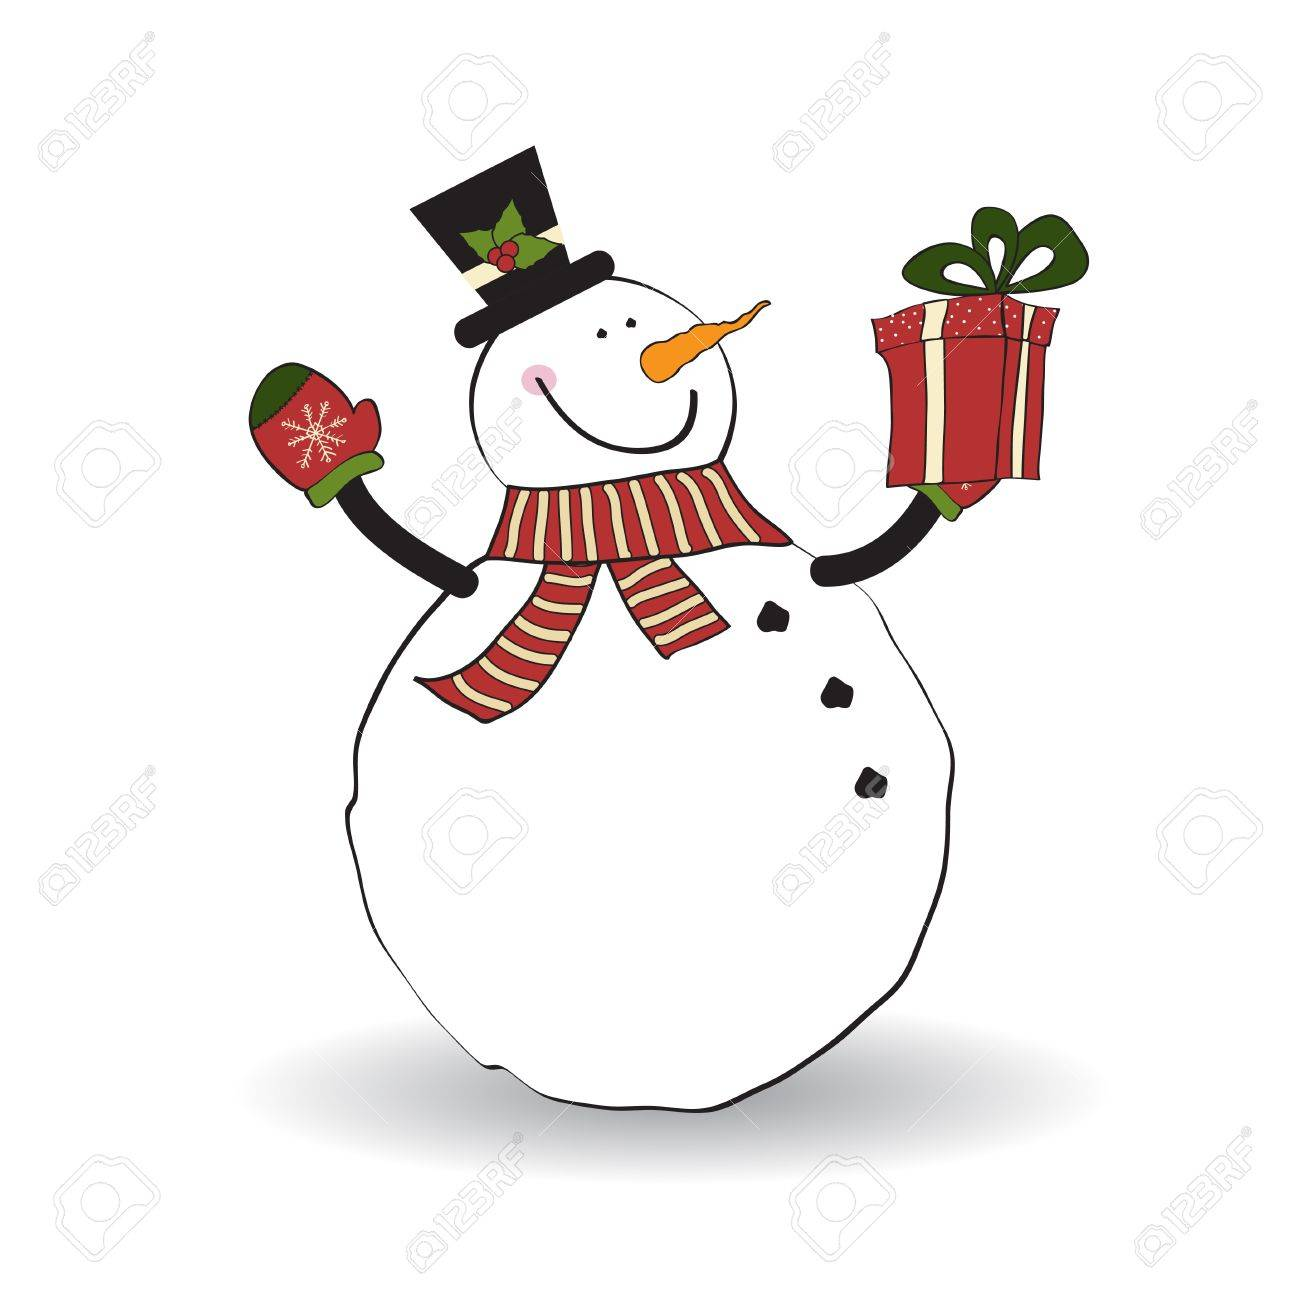 Christmas greeting card with snowman Stock Vector - 11358320